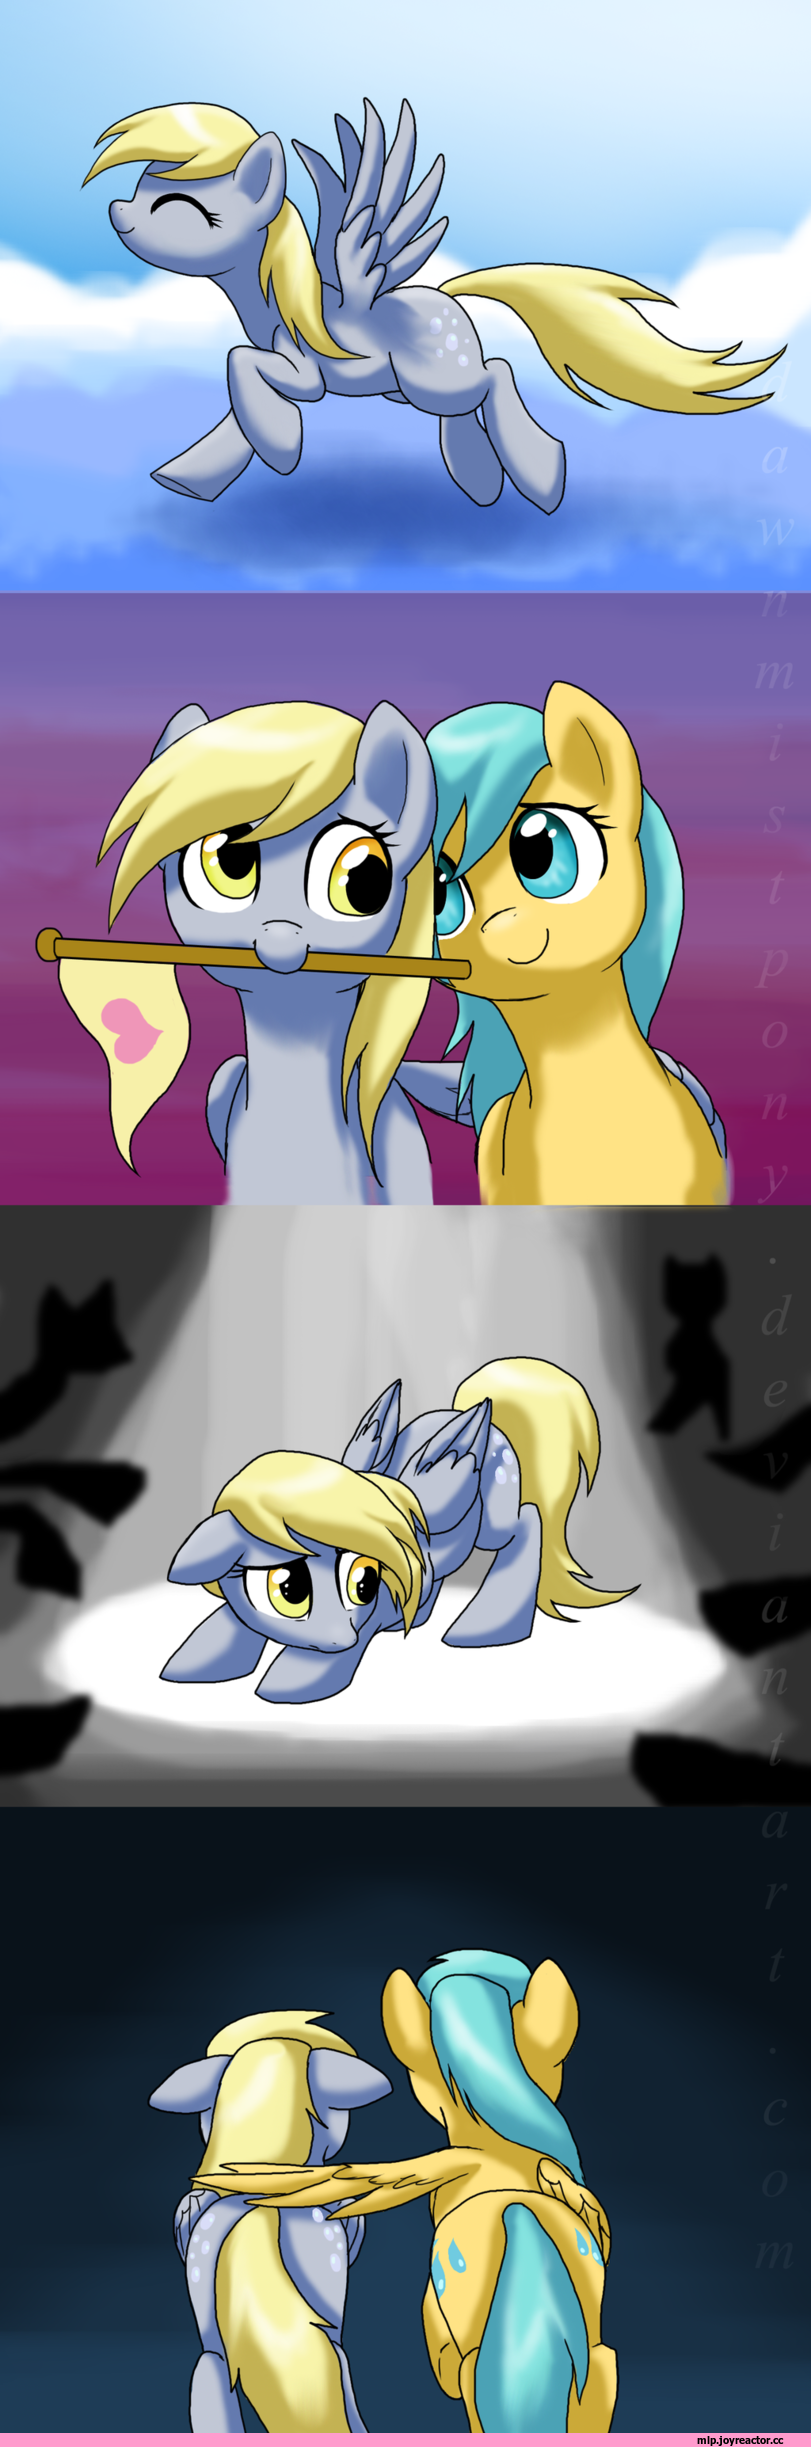 Sunshower Raindrops Fan Club  Page 2  Fan Clubs  MLP Forums # Sunshower Club_000110